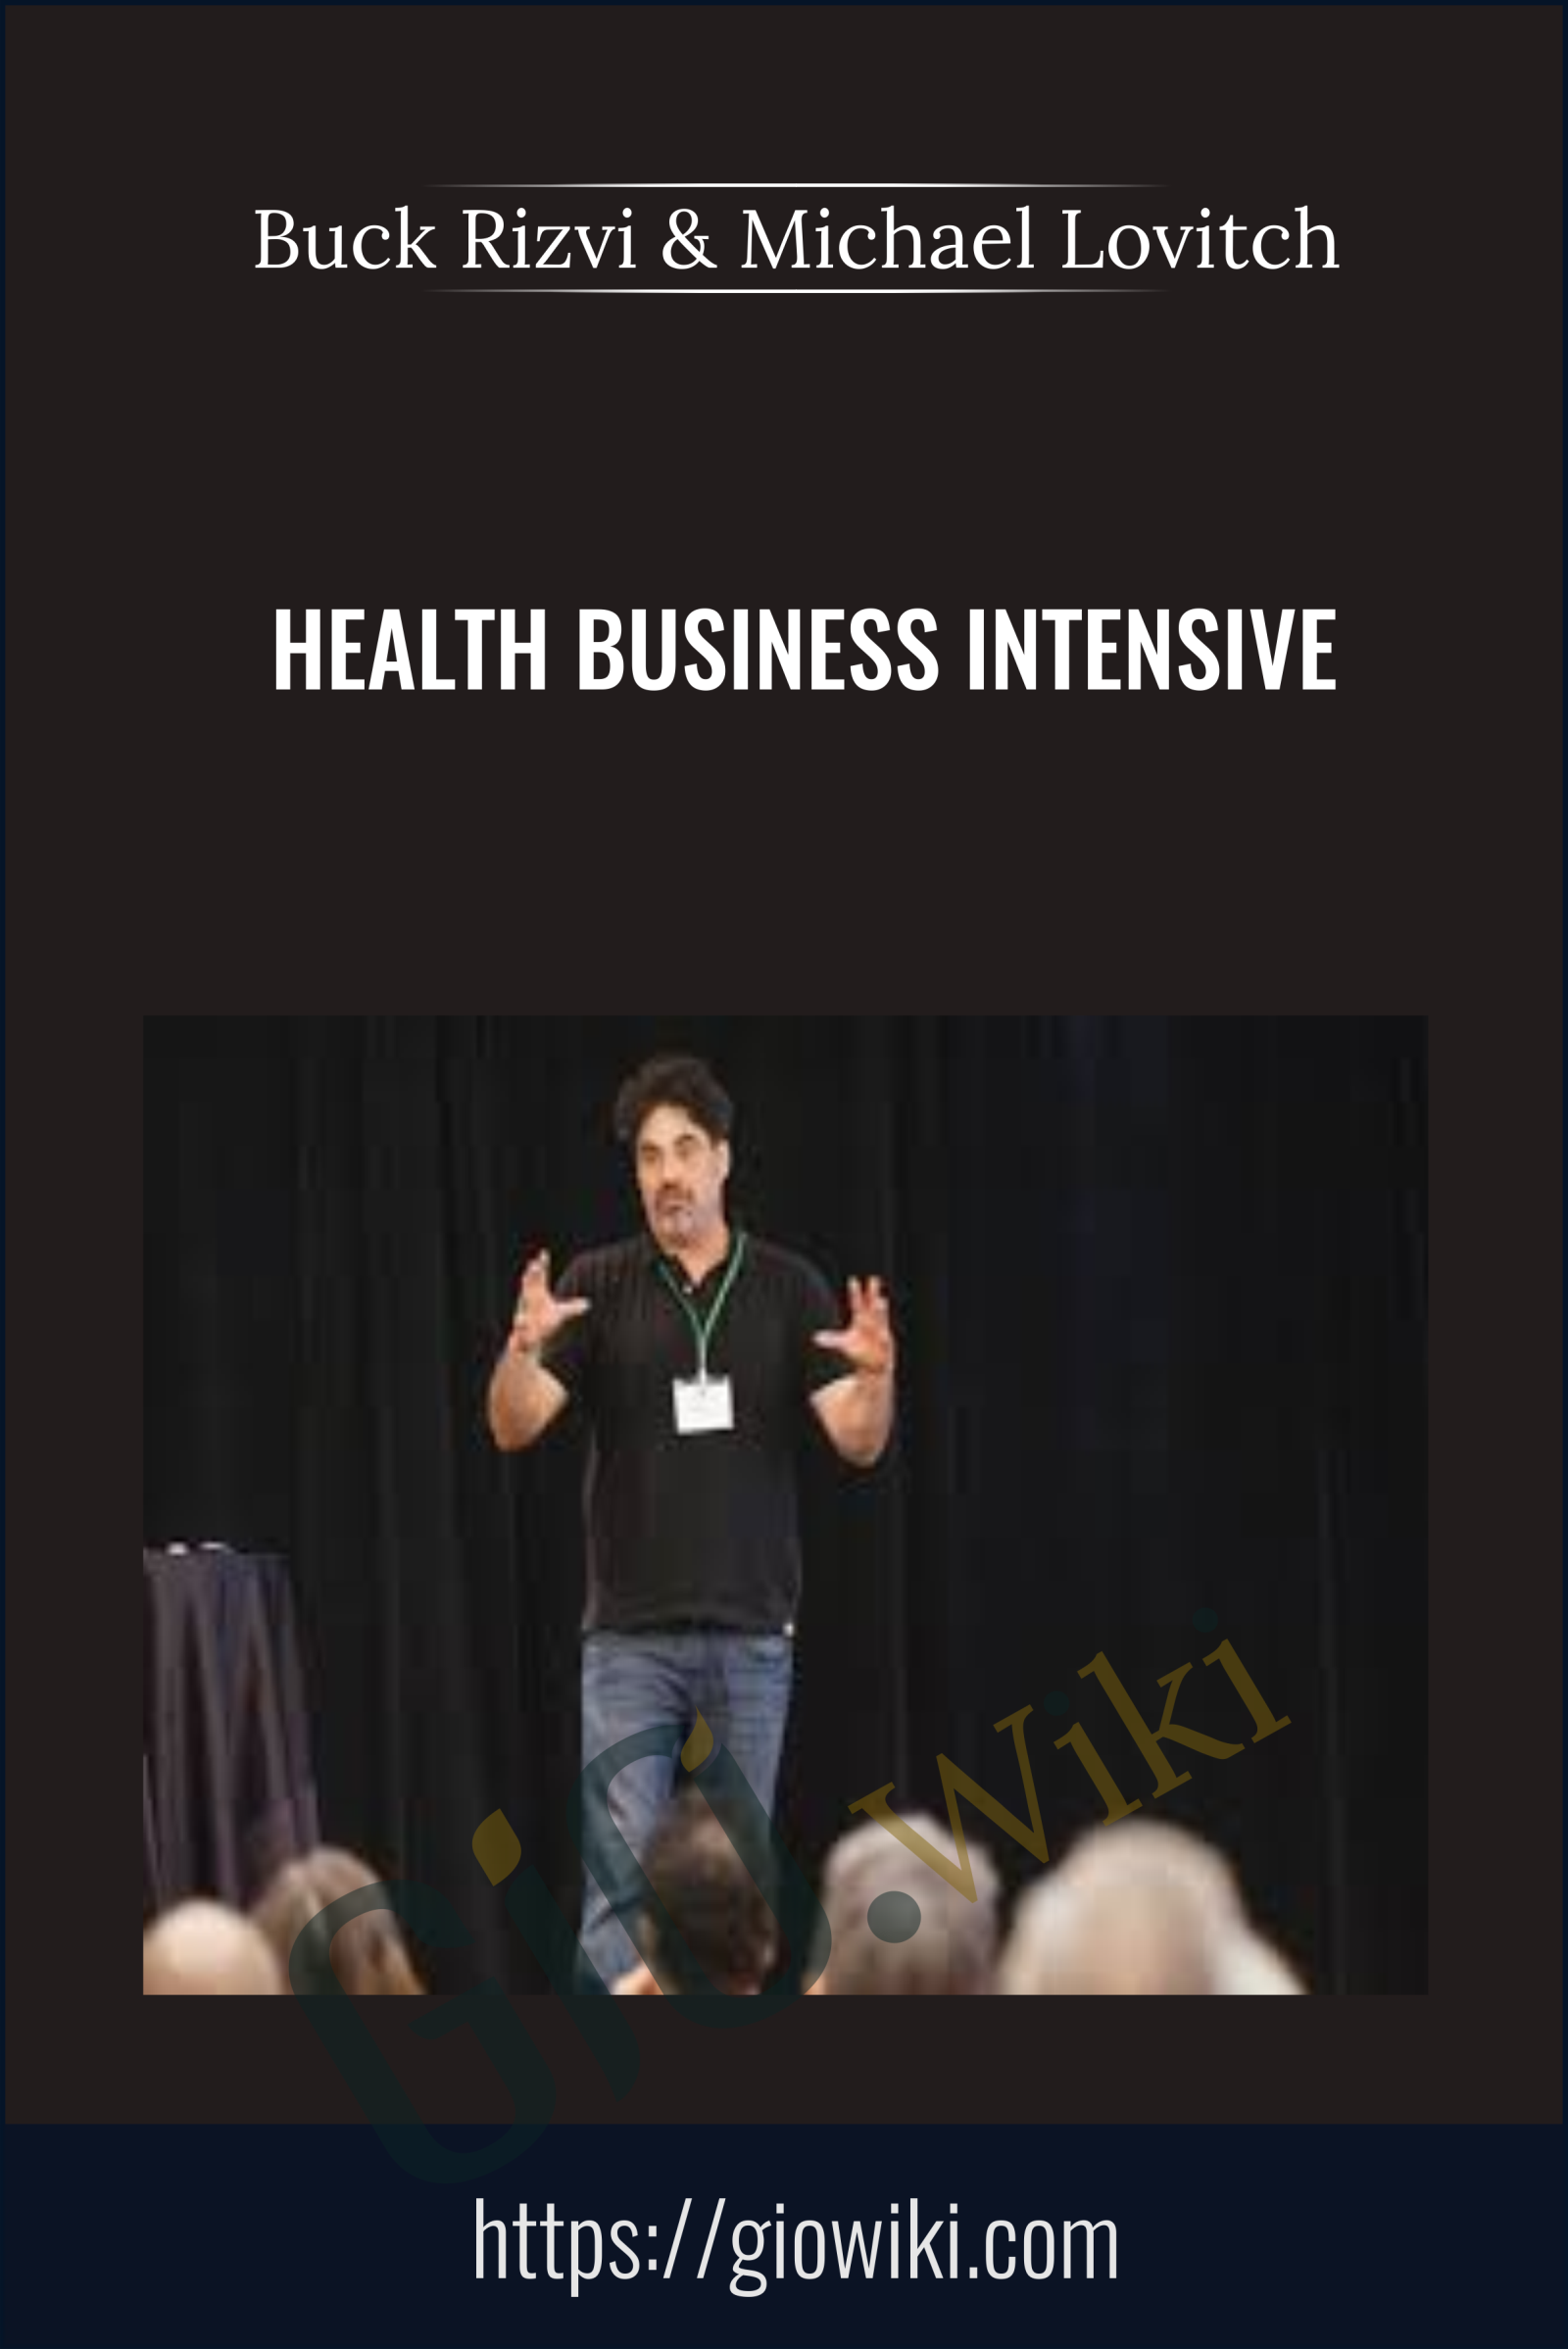 Health Business Intensive - Buck Rizvi & Michael Lovitch